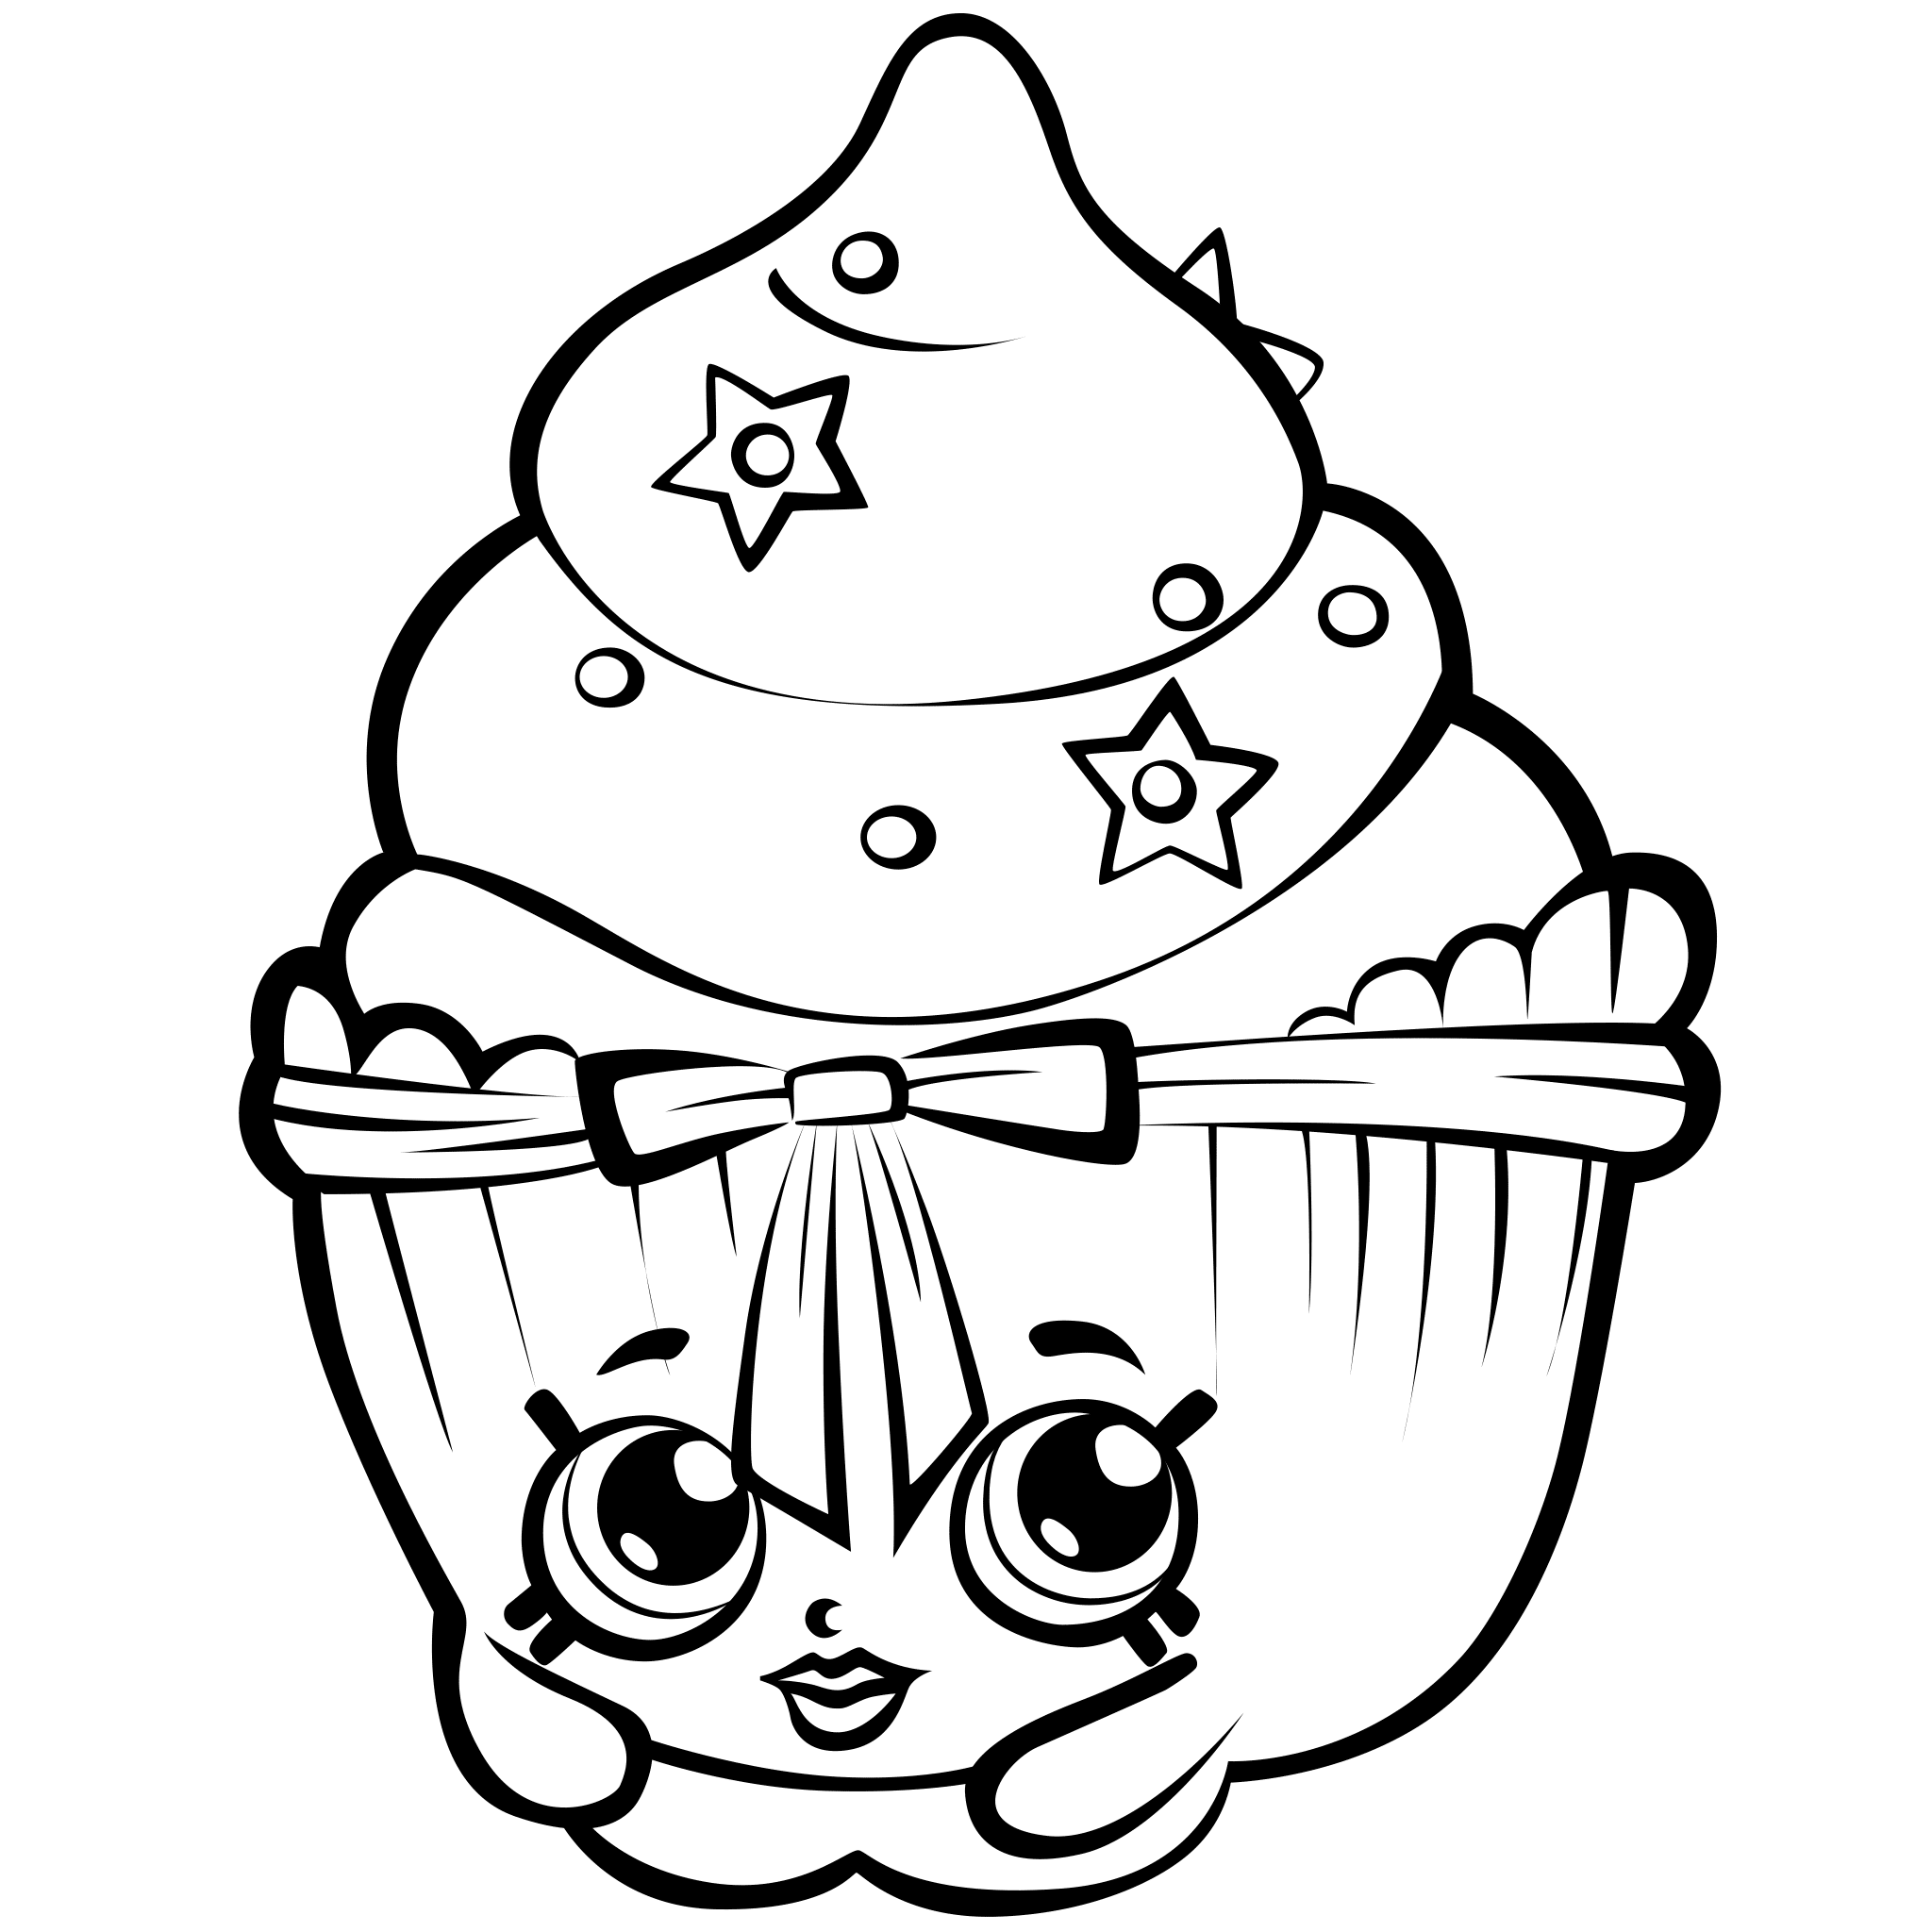 graphic regarding Shopkins Coloring Pages Printable known as Shopkins Coloring Internet pages - Easiest Coloring Web pages For Little ones